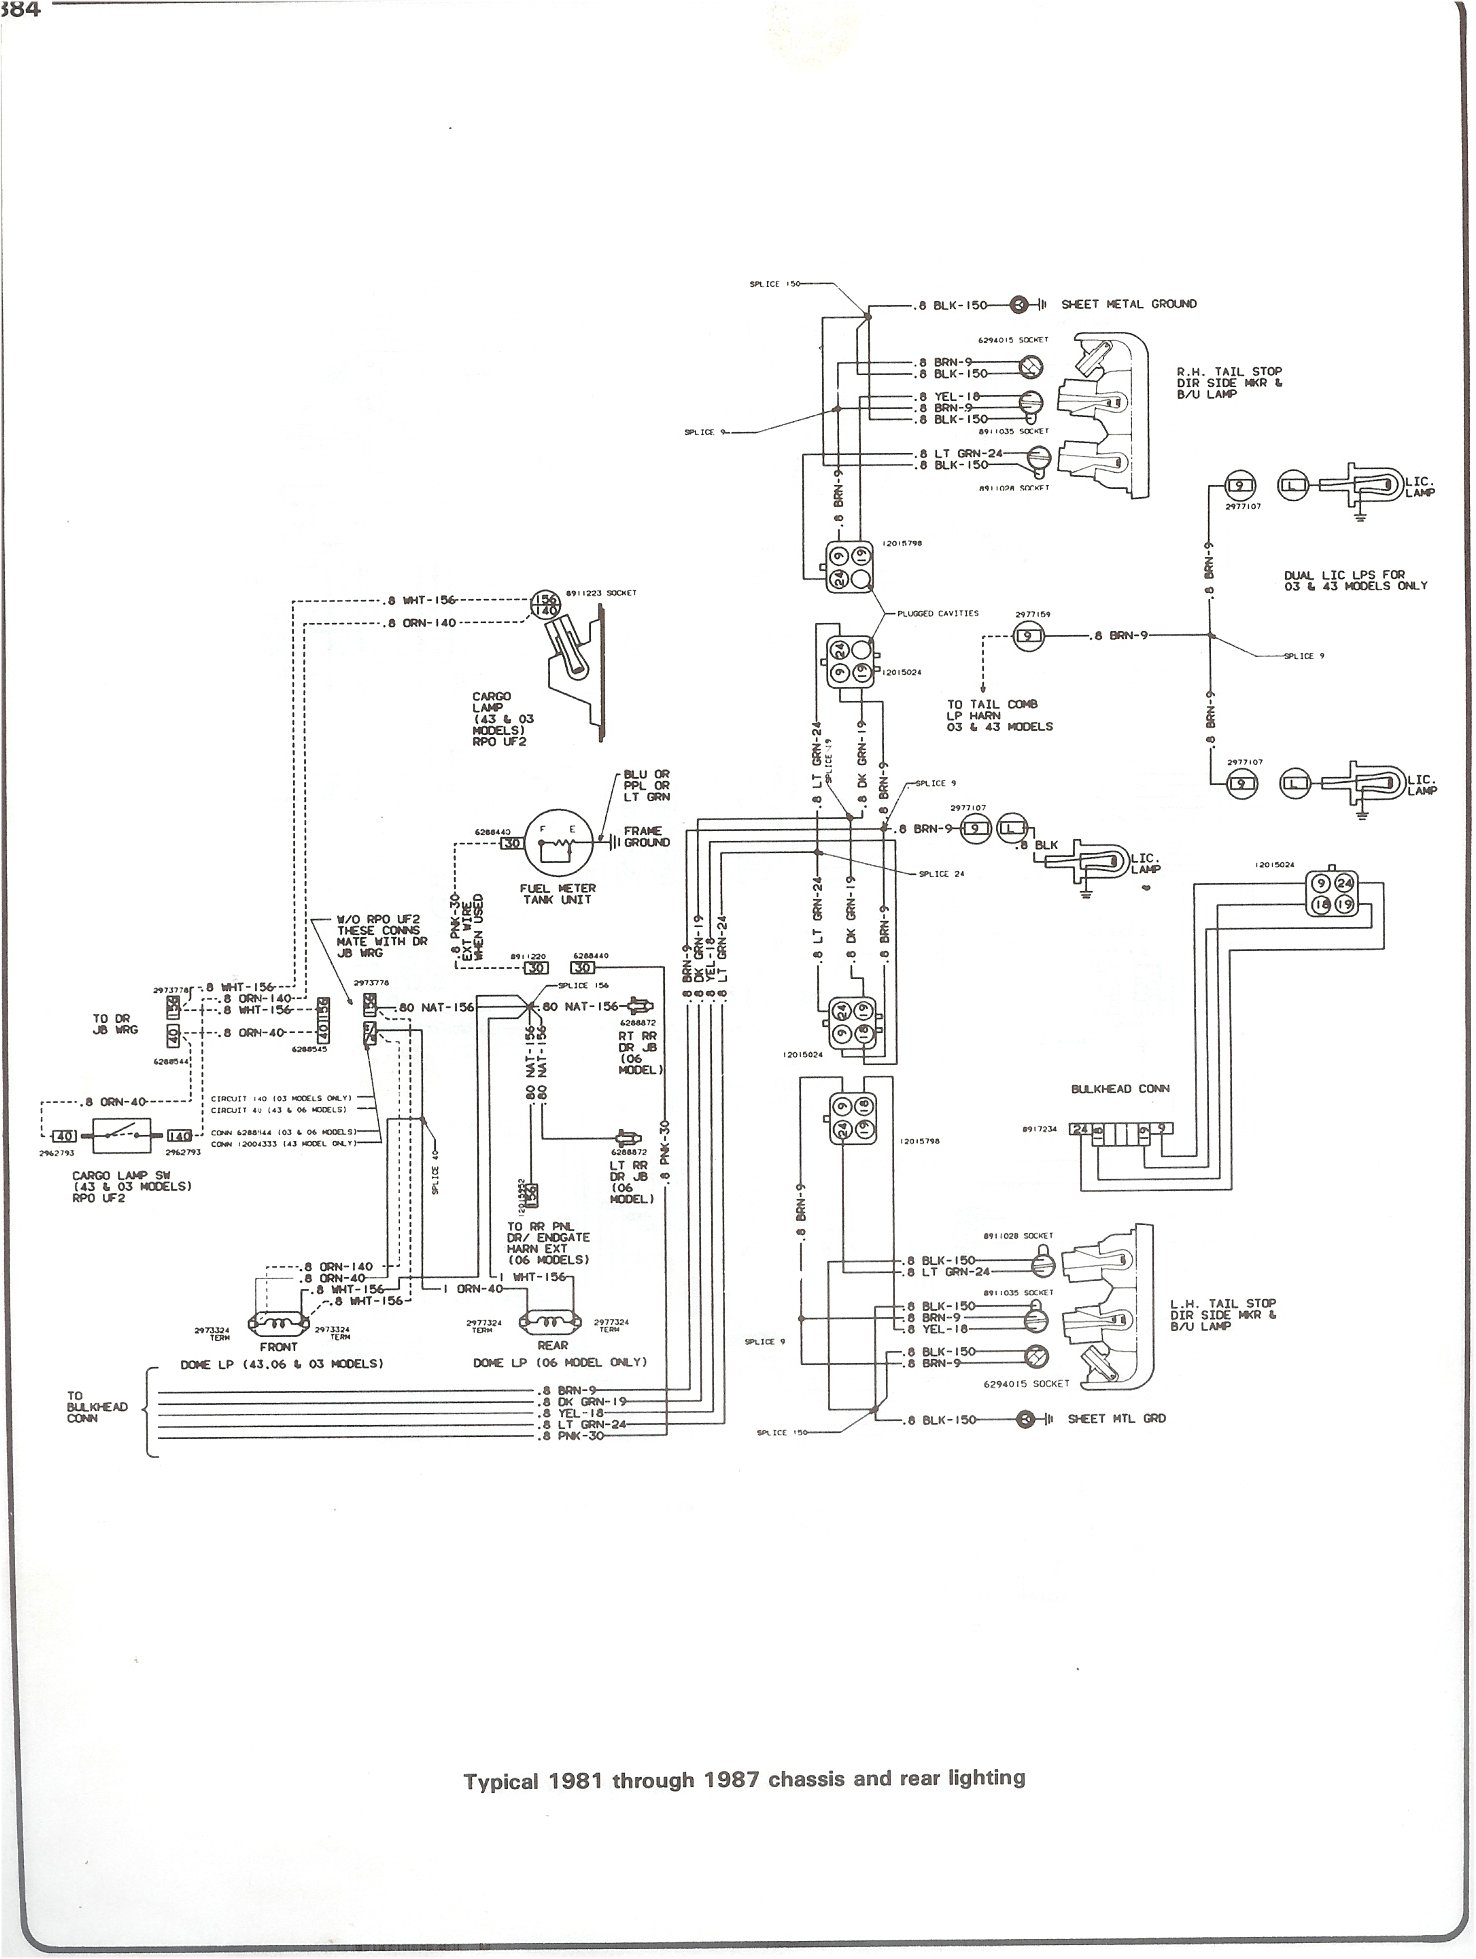 fuse diagram for 2001 suburban wiring library rh mckortenoord nl